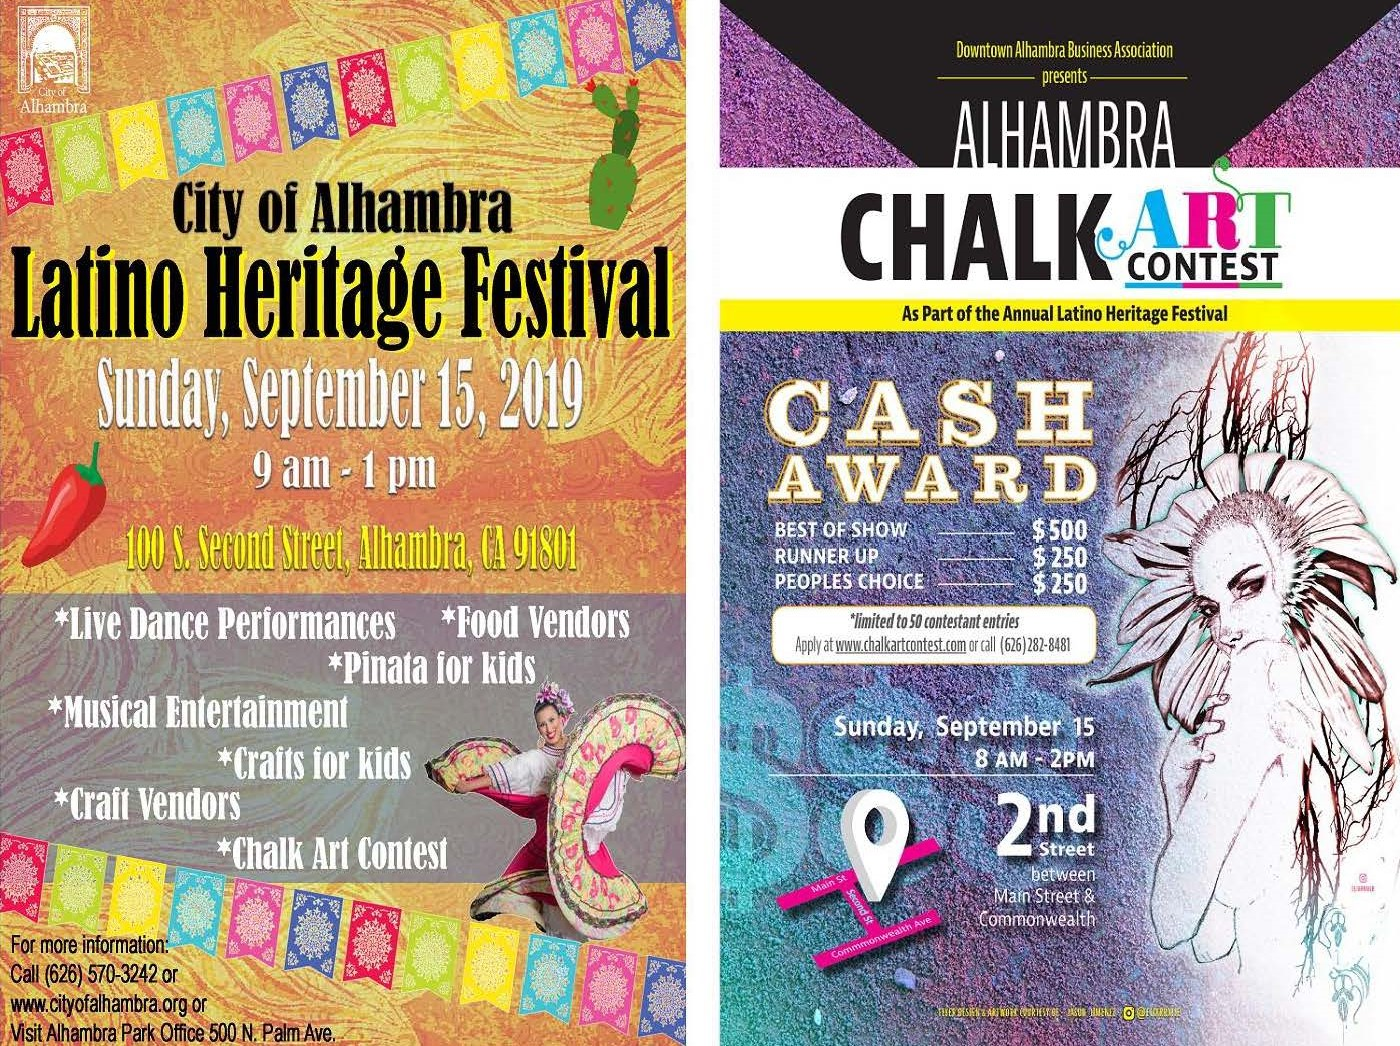 2019 Latino Heritage Festival Flyer and Chalk Art Contest Flyer